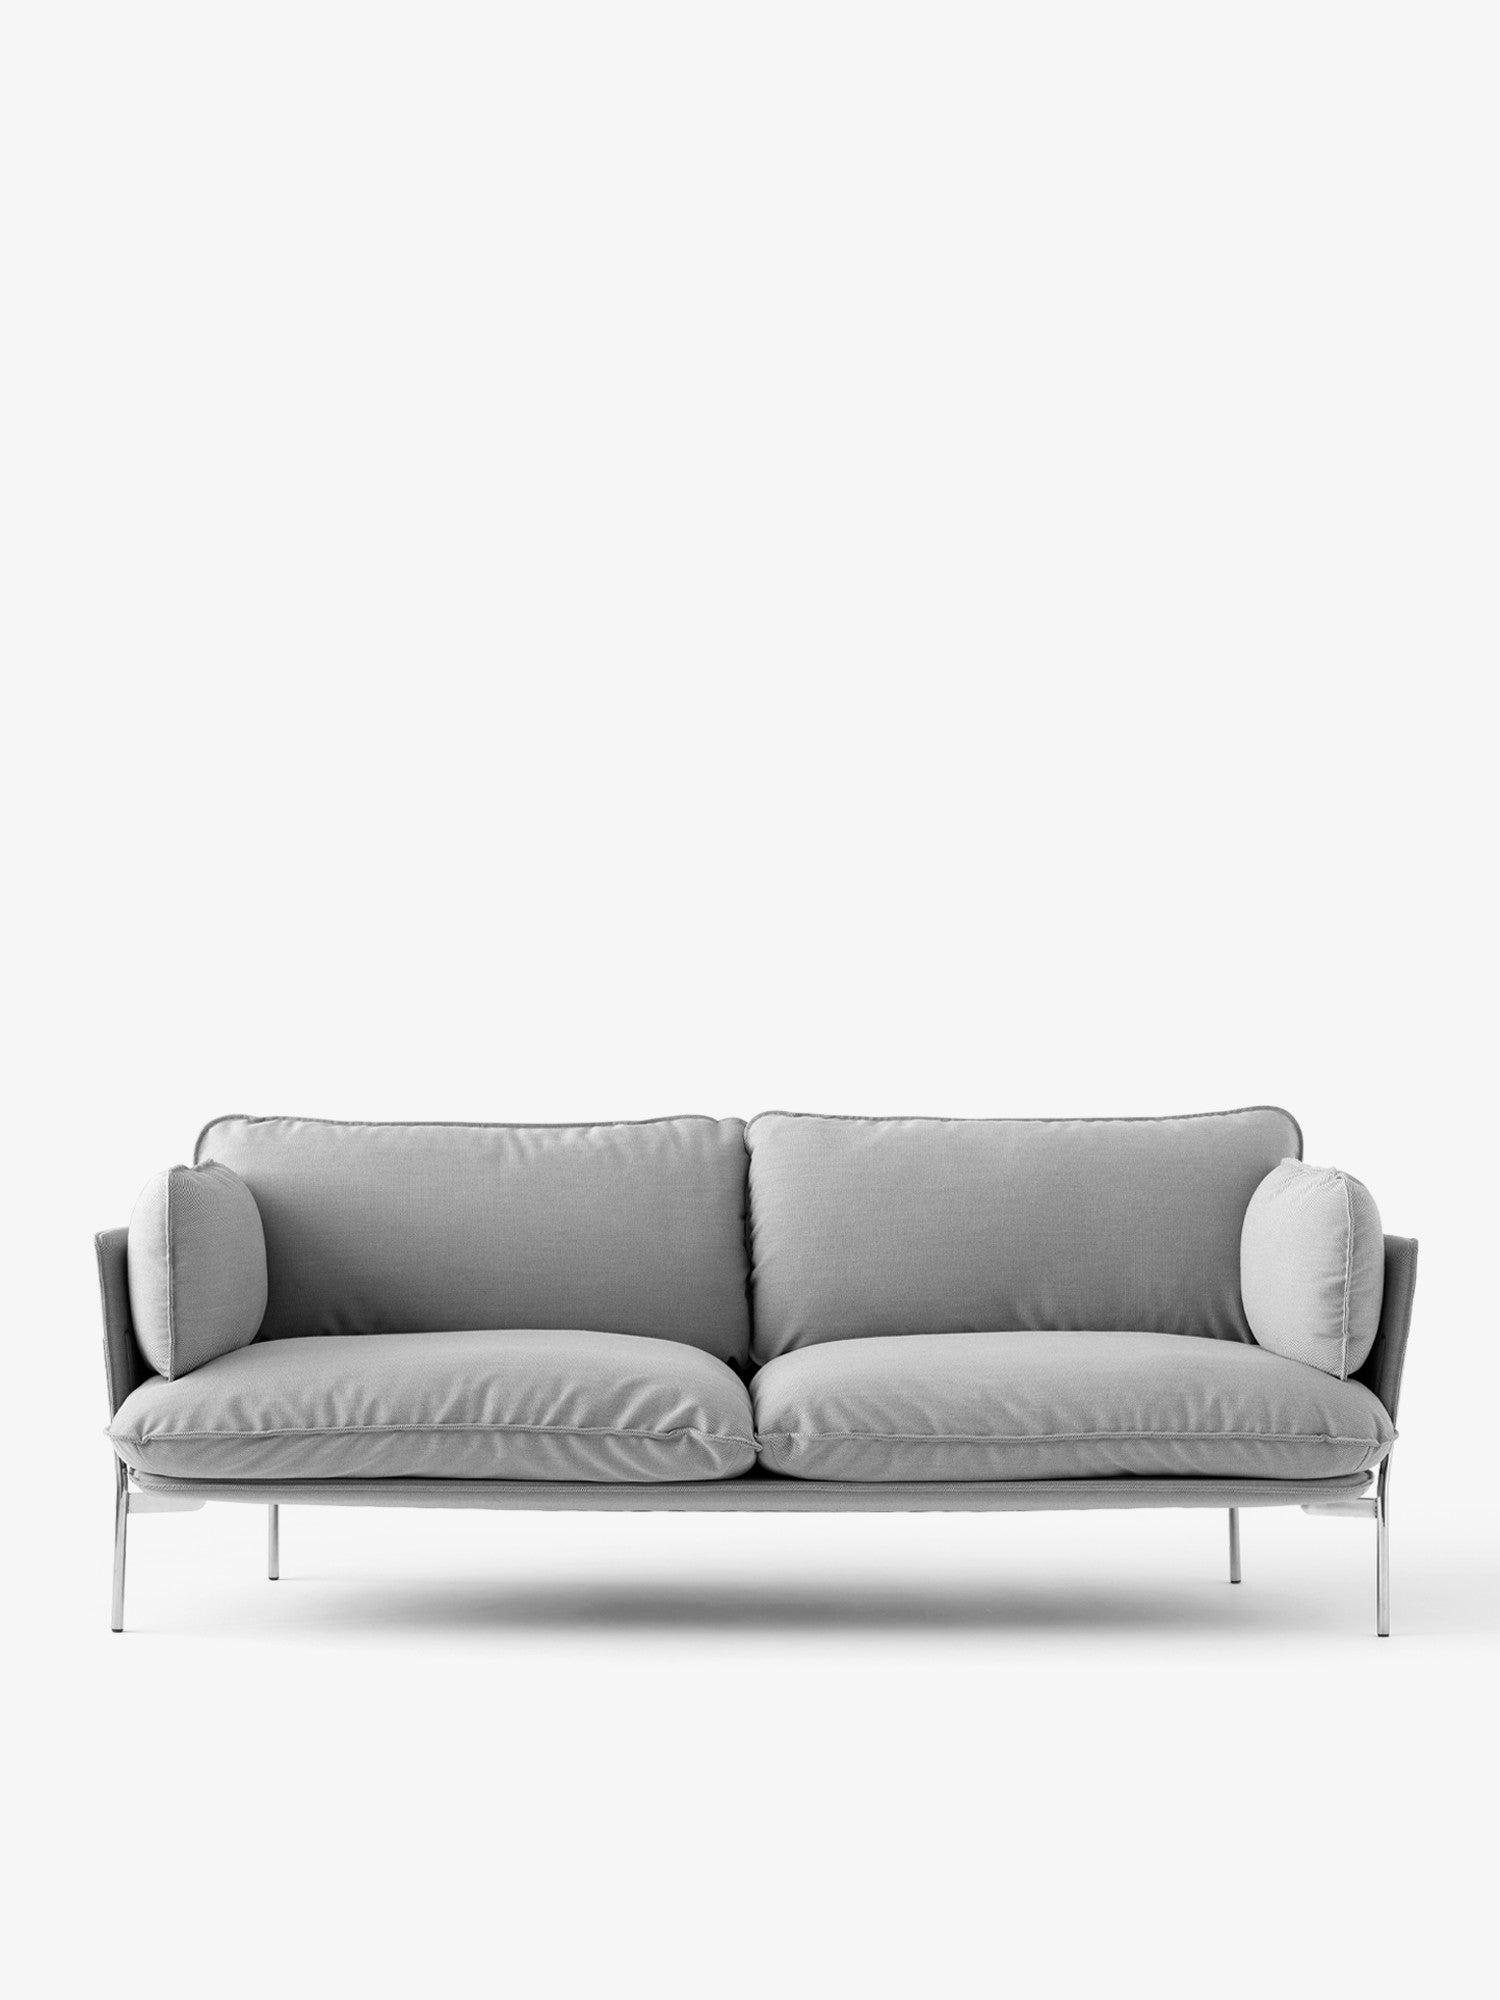 Cloud 3 seater sofa, low back